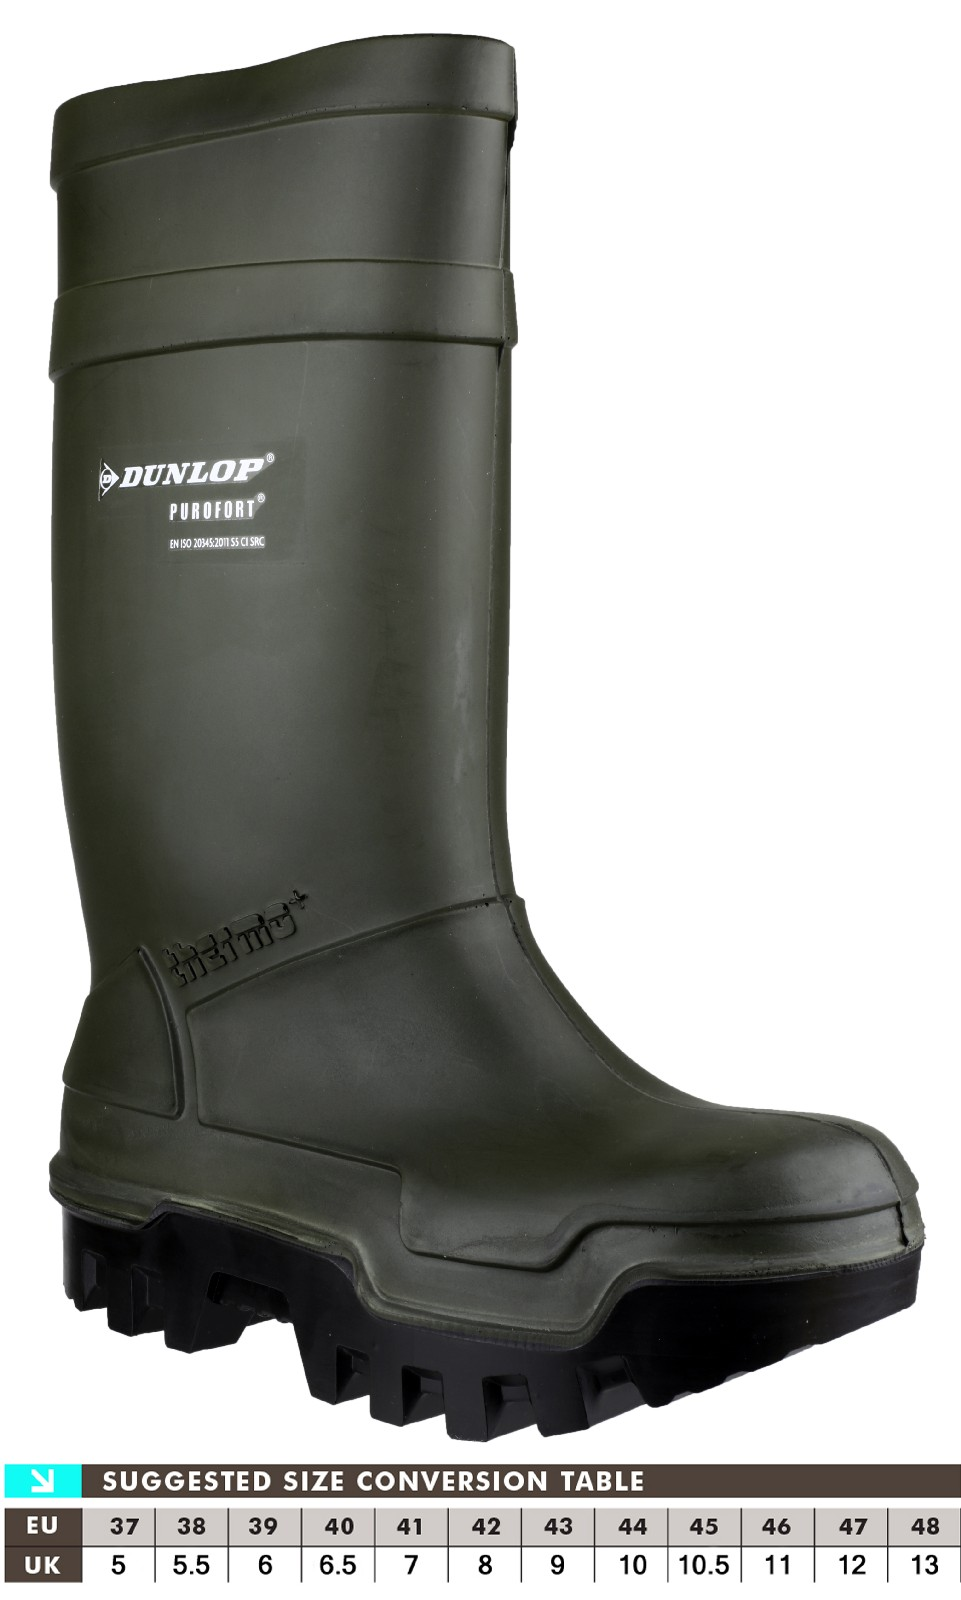 Dunlop Purofort Thermo Full Safety Wellingtons Green